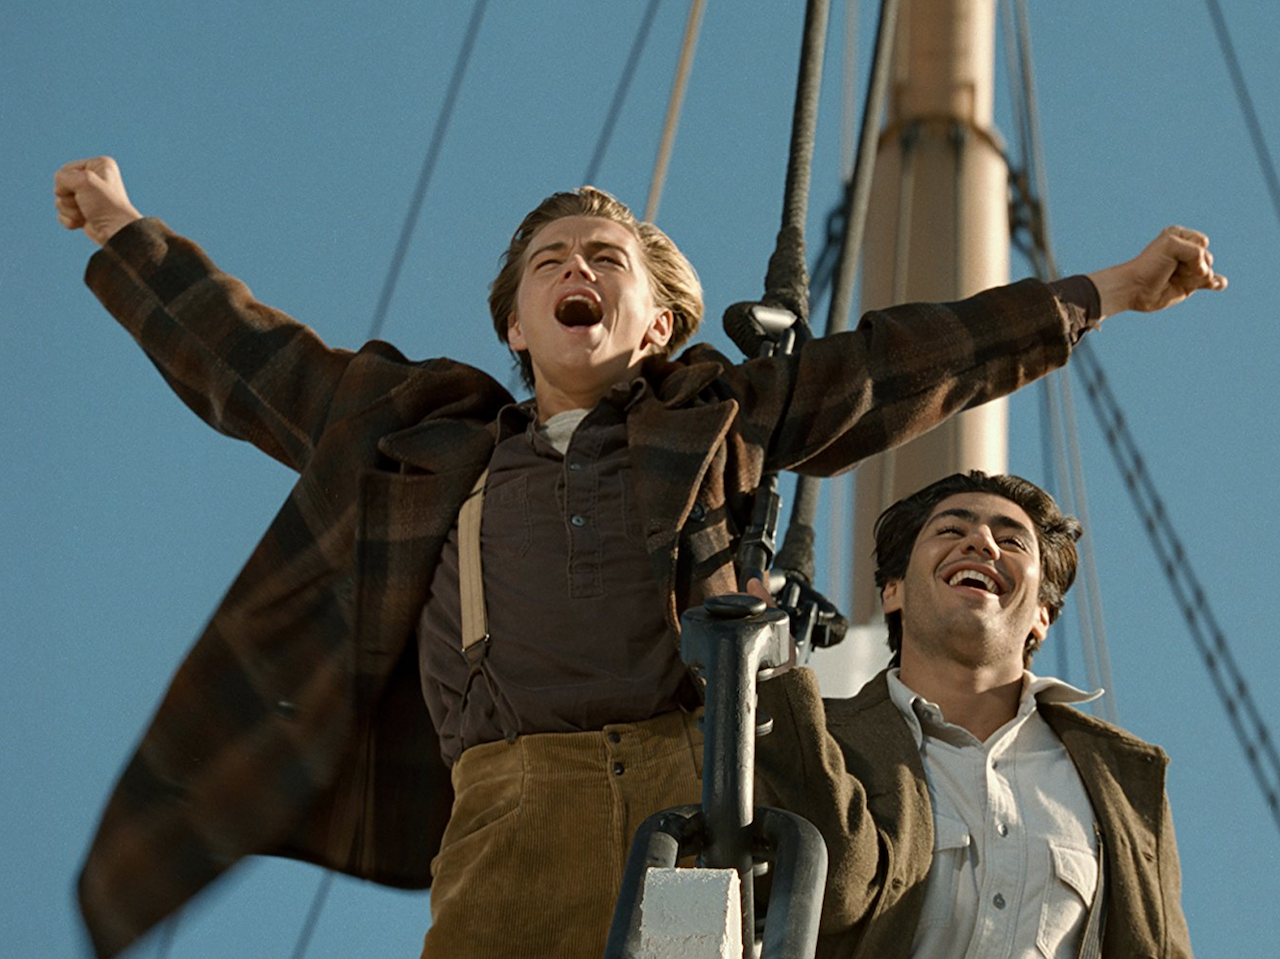 Titanic hits theatres (again!) in December. Photo, Paramount Pictures.